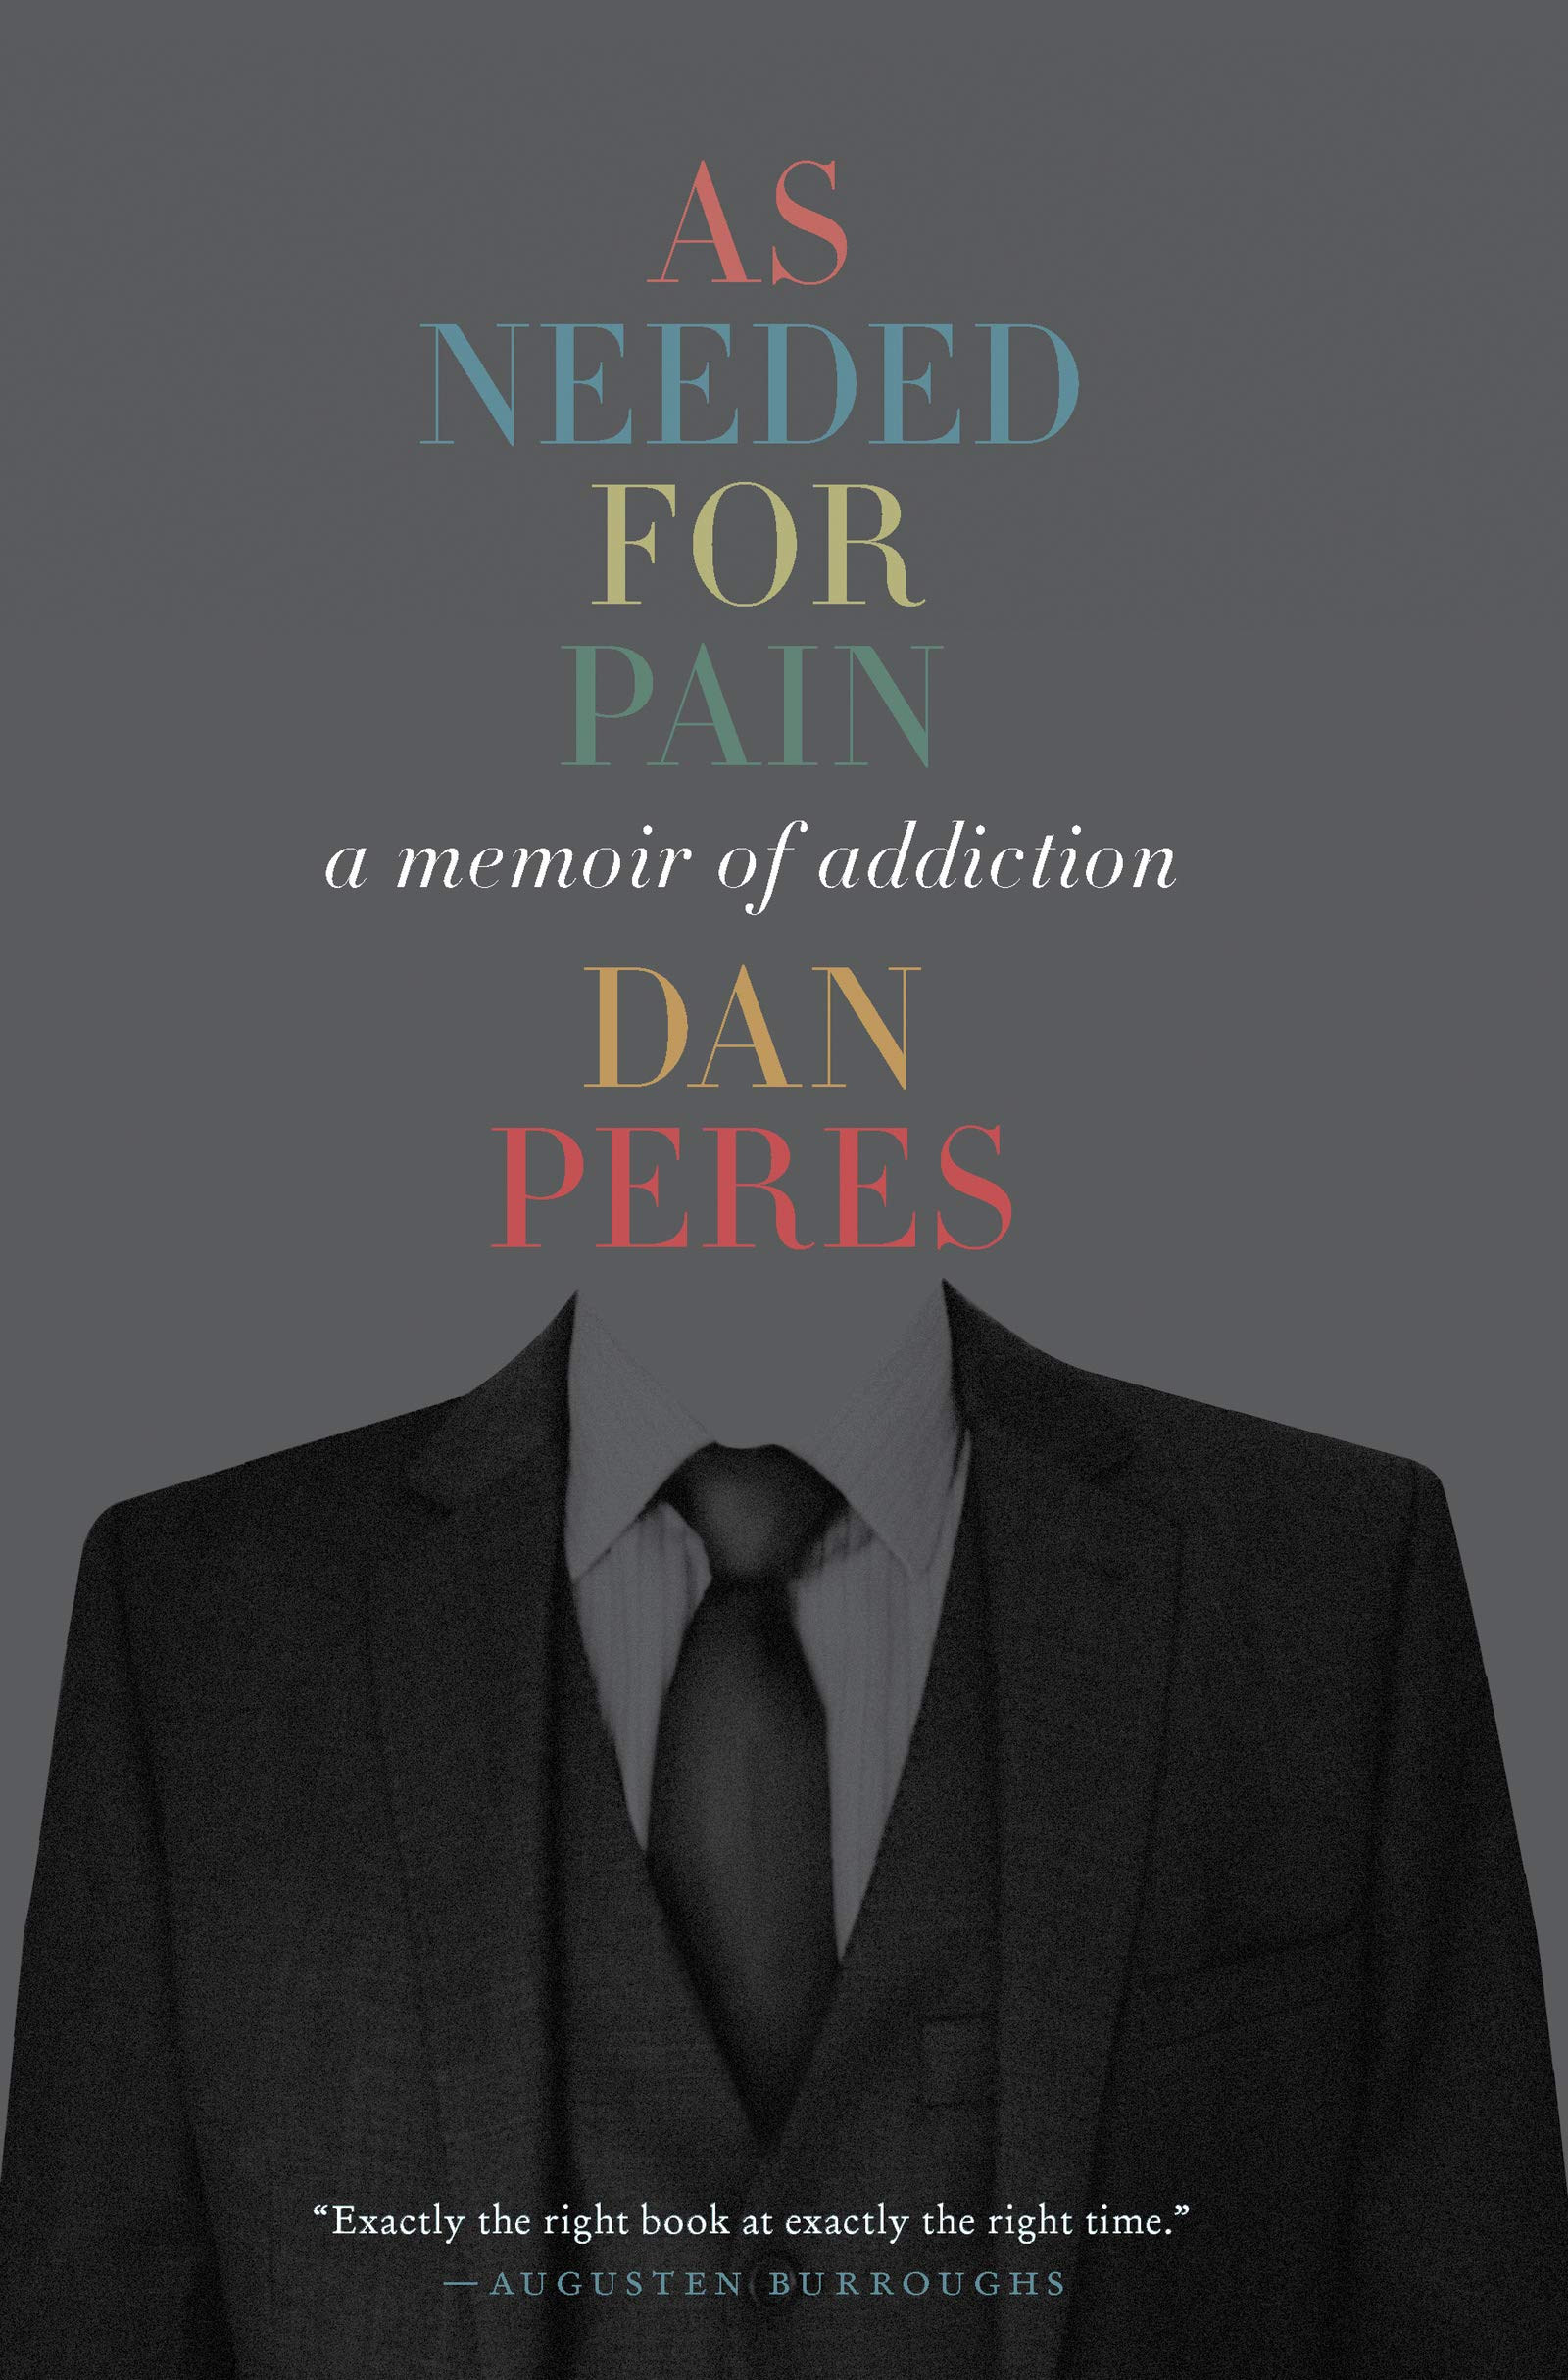 As Needed for Pain: A Memoir of Addiction